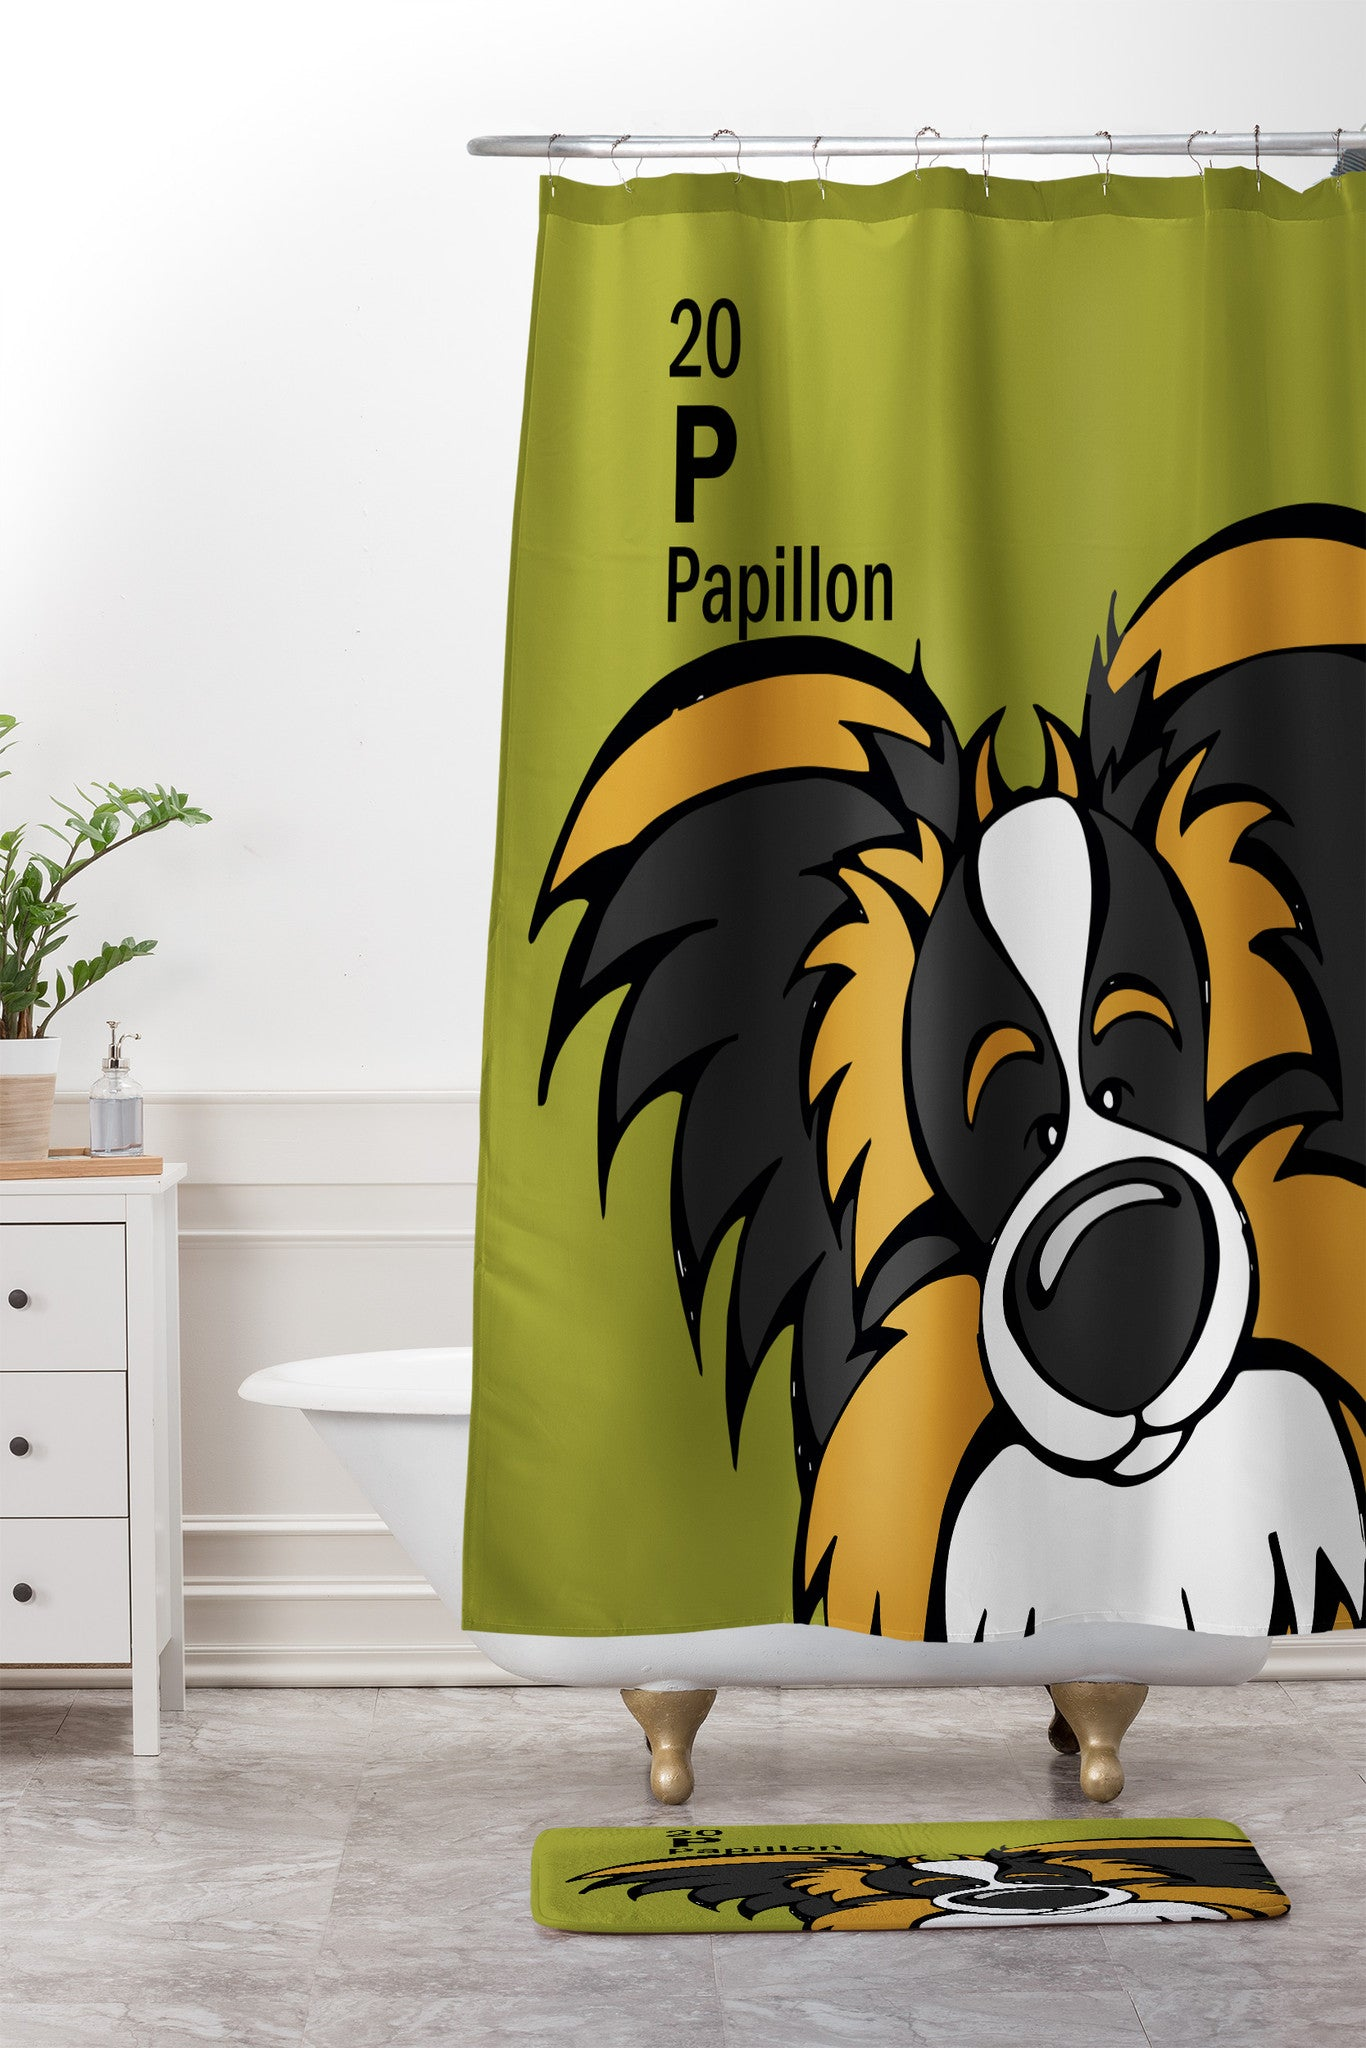 Angry Squirrel Studio Papillon 20 Shower Curtain And Mat